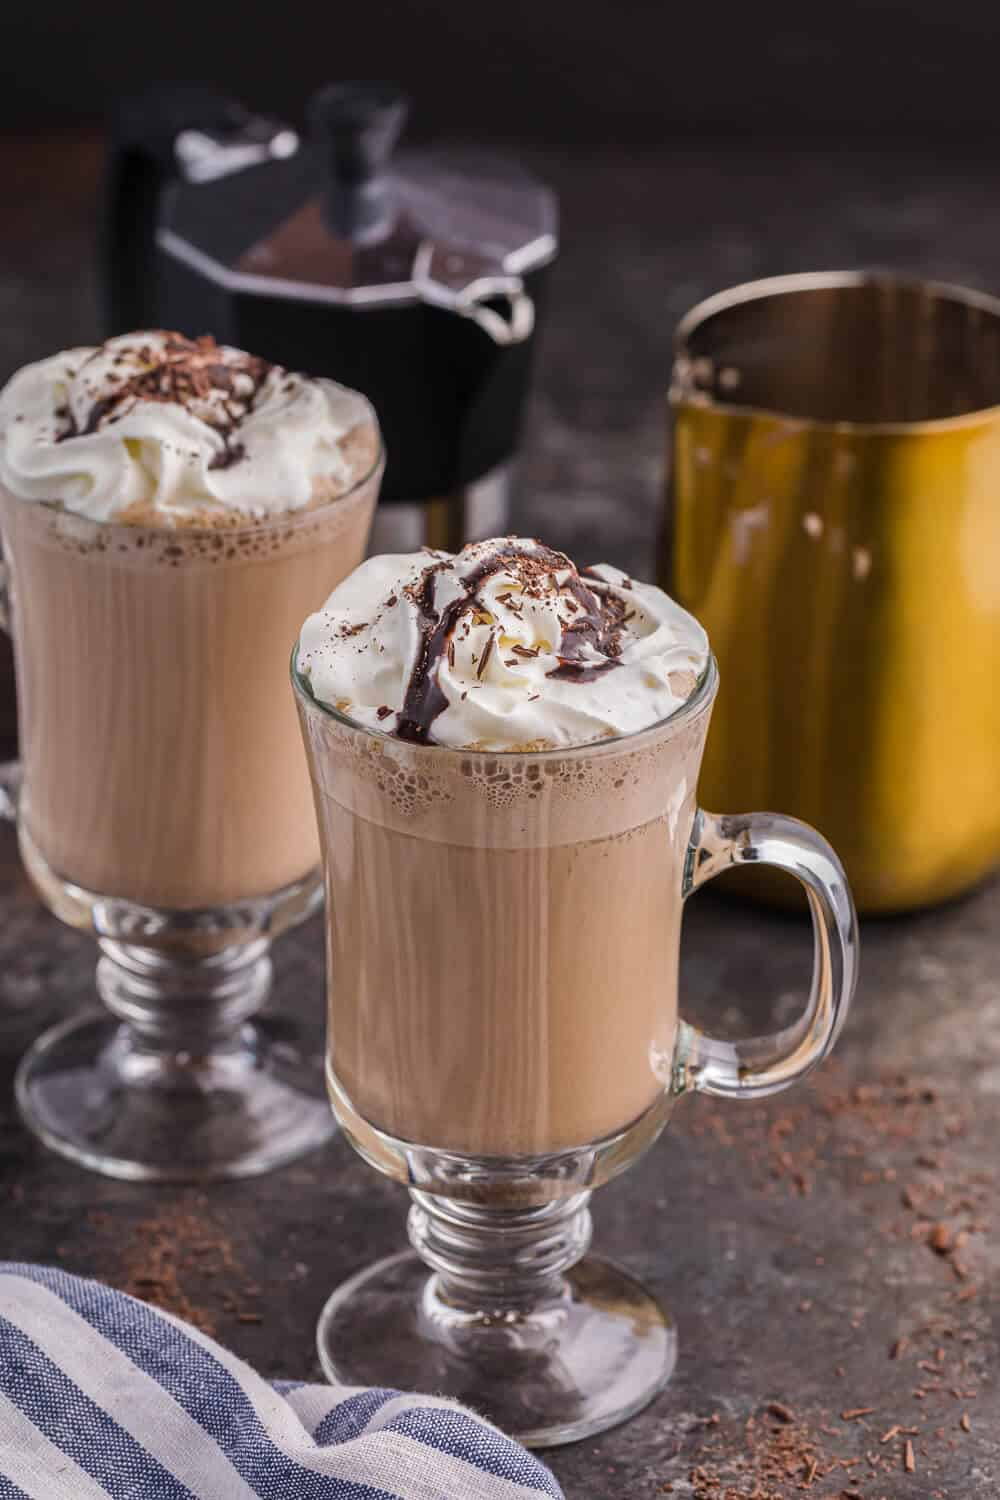 two mugs of mocha latte with an espresso maker and a milk frothing pitcher